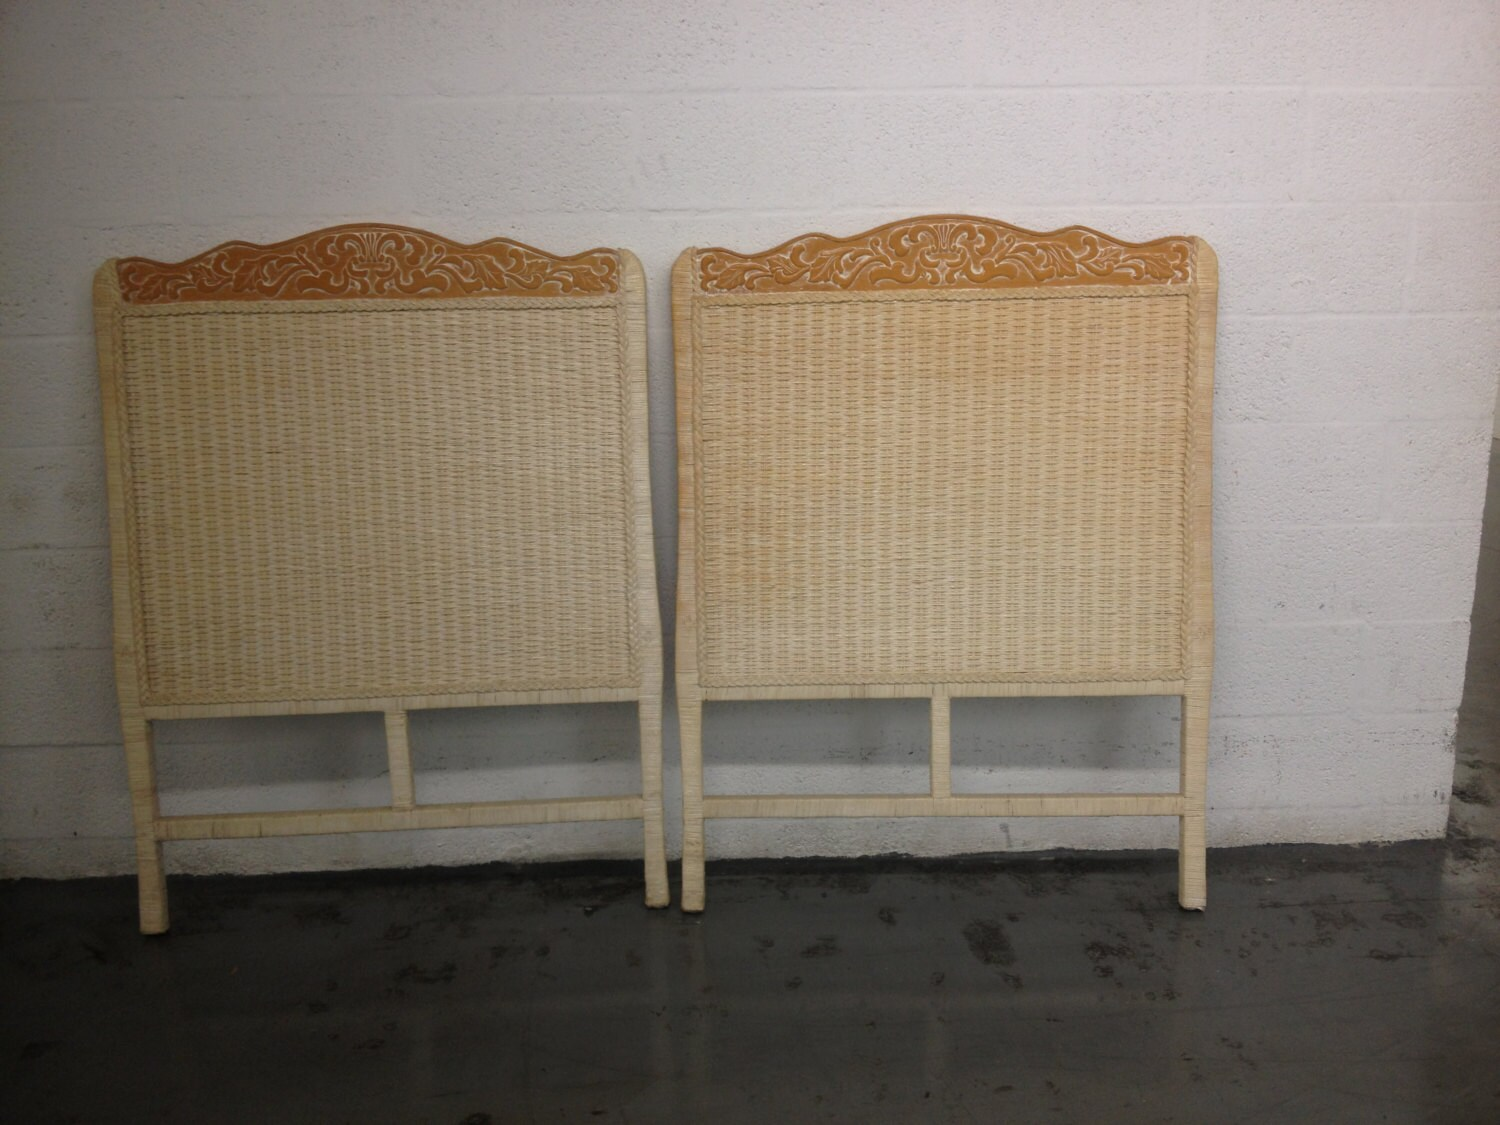 Vintage Pair Headboard Wicker Carving Wood White Distress Or Shabby Chic Color Cottage Chic